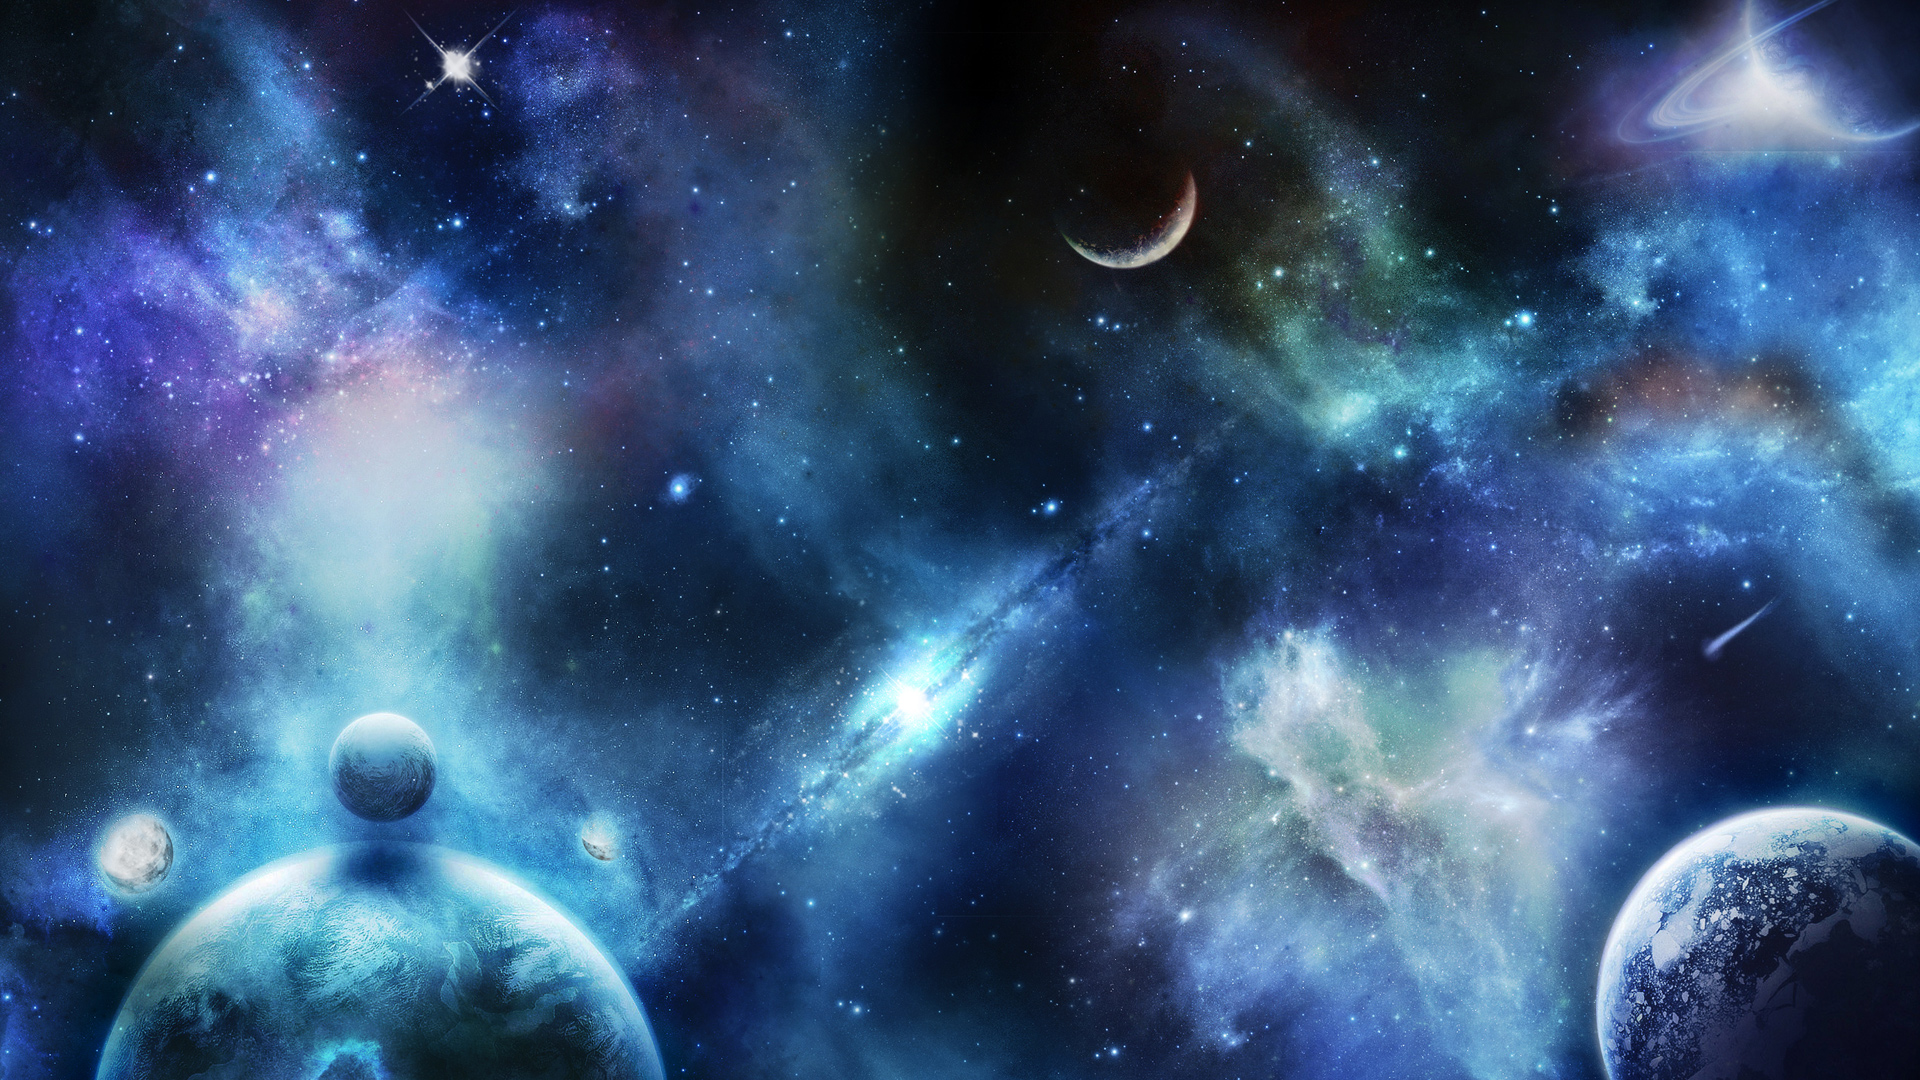 Spacescape Wallpapers